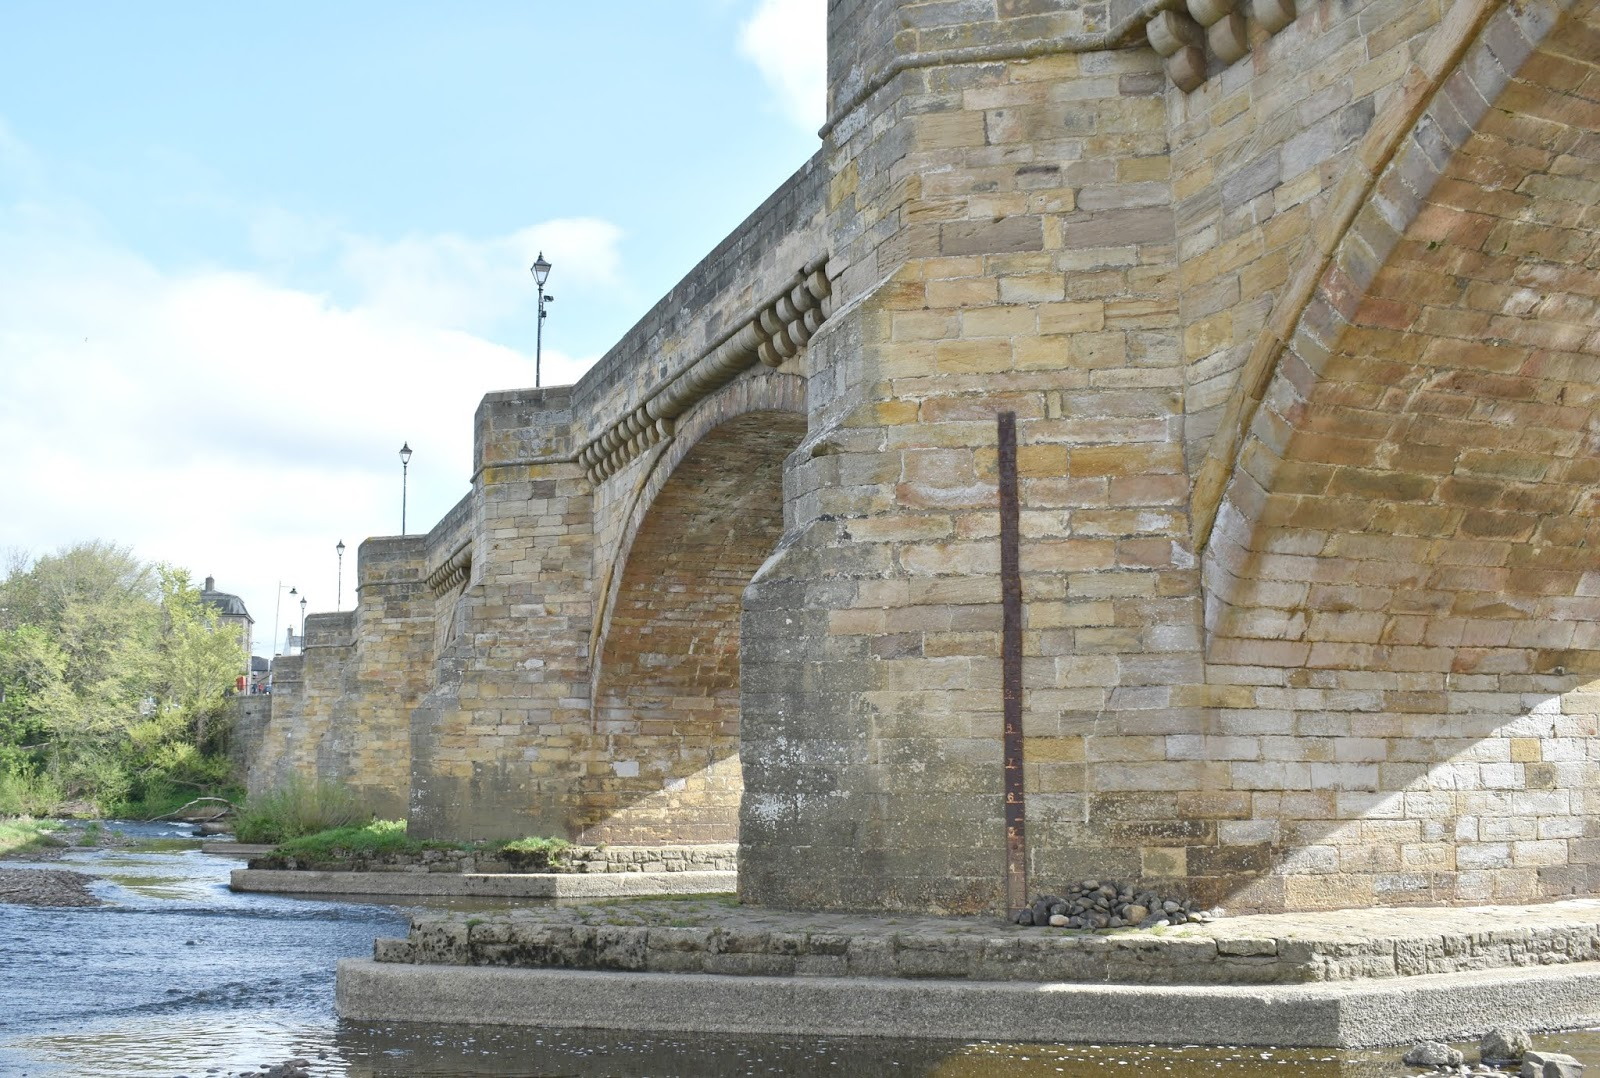 Day Trip to Corbridge